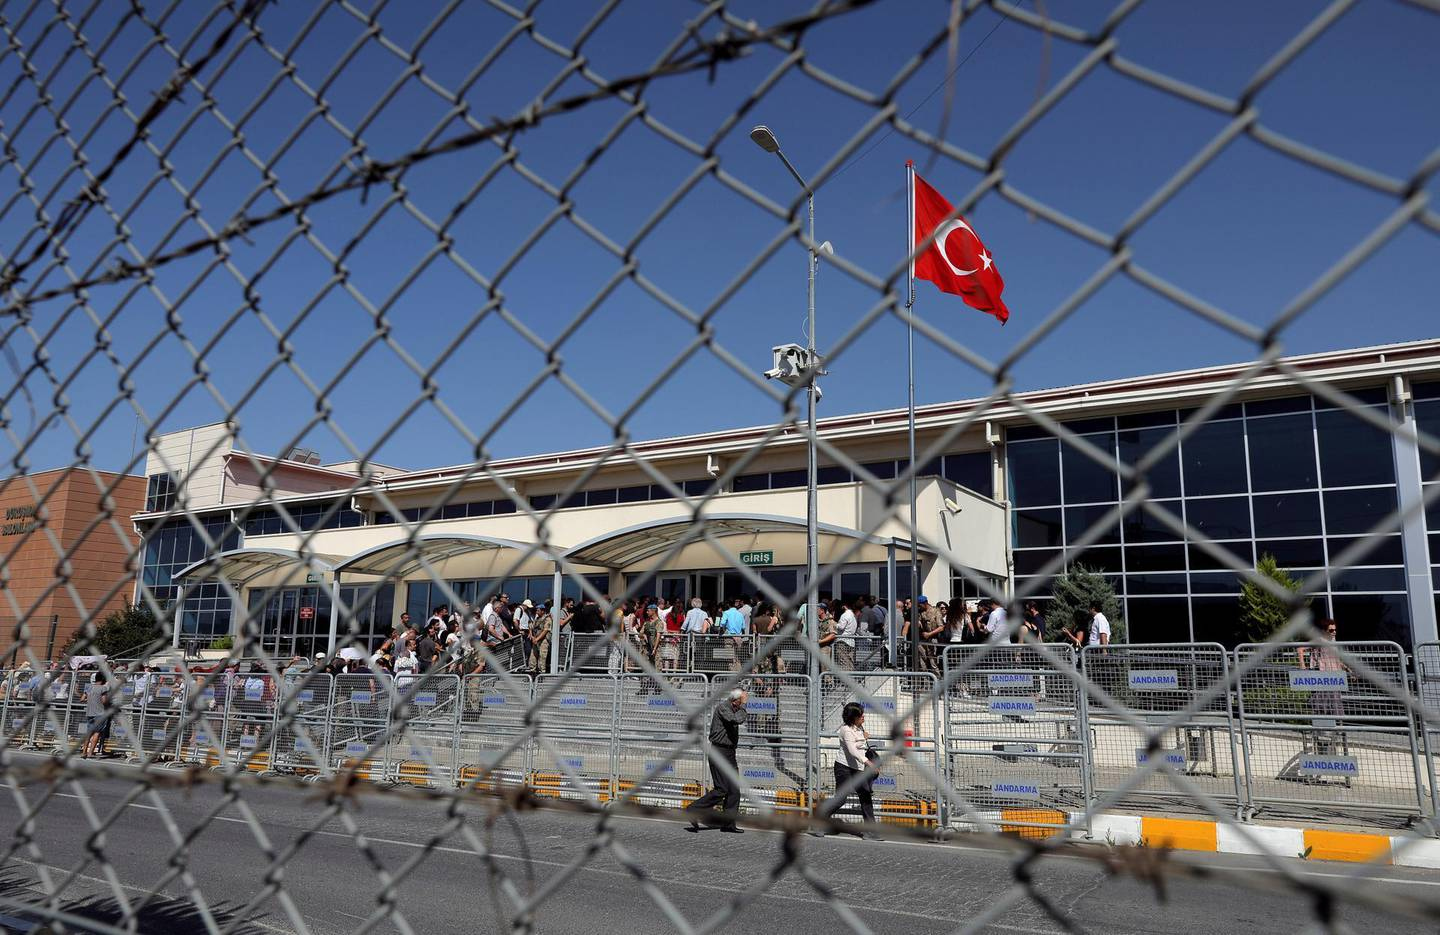 FILE PHOTO: Friends and supporters of the defendants line up to enter the courtroom at the Silivri Prison and Courthouse complex in Silivri near Istanbul, Turkey, June 24, 2019. REUTERS/Huseyin Aldemir/File Photo